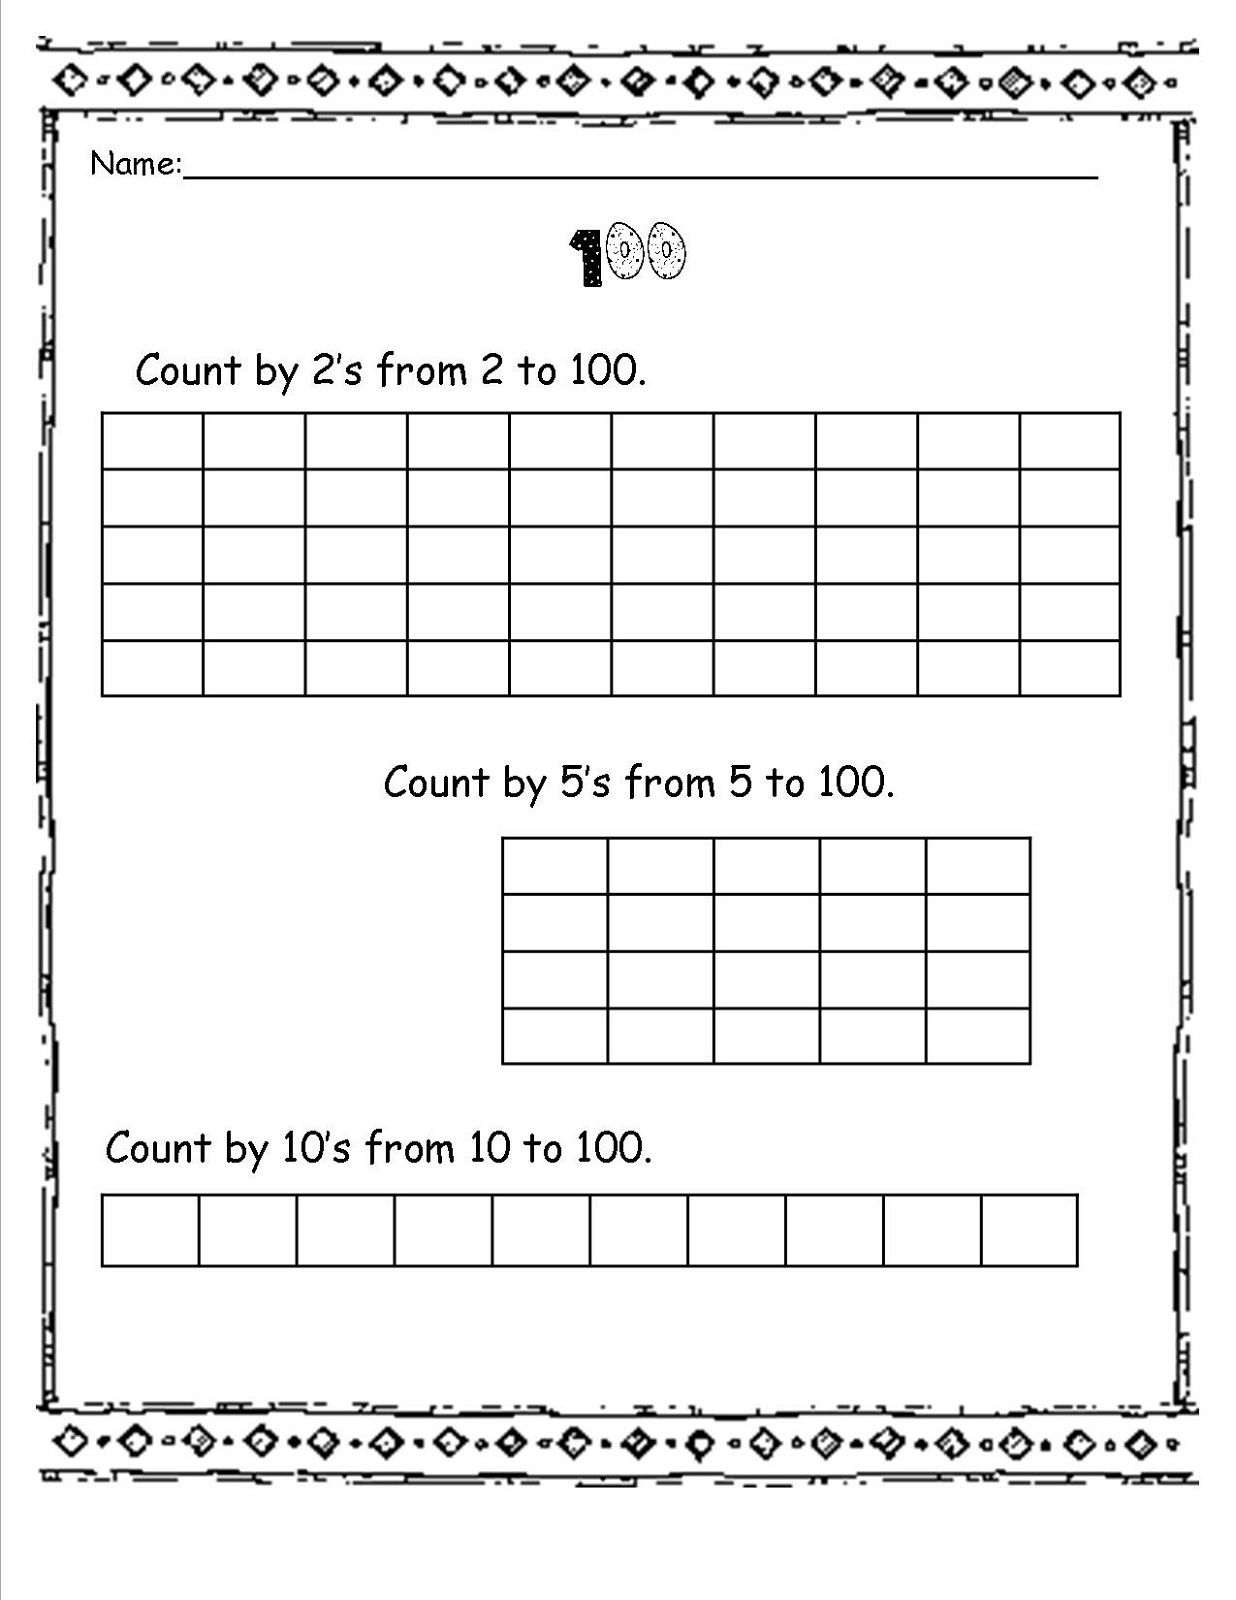 Skip Count Worksheets For Enjoyable Math Learning